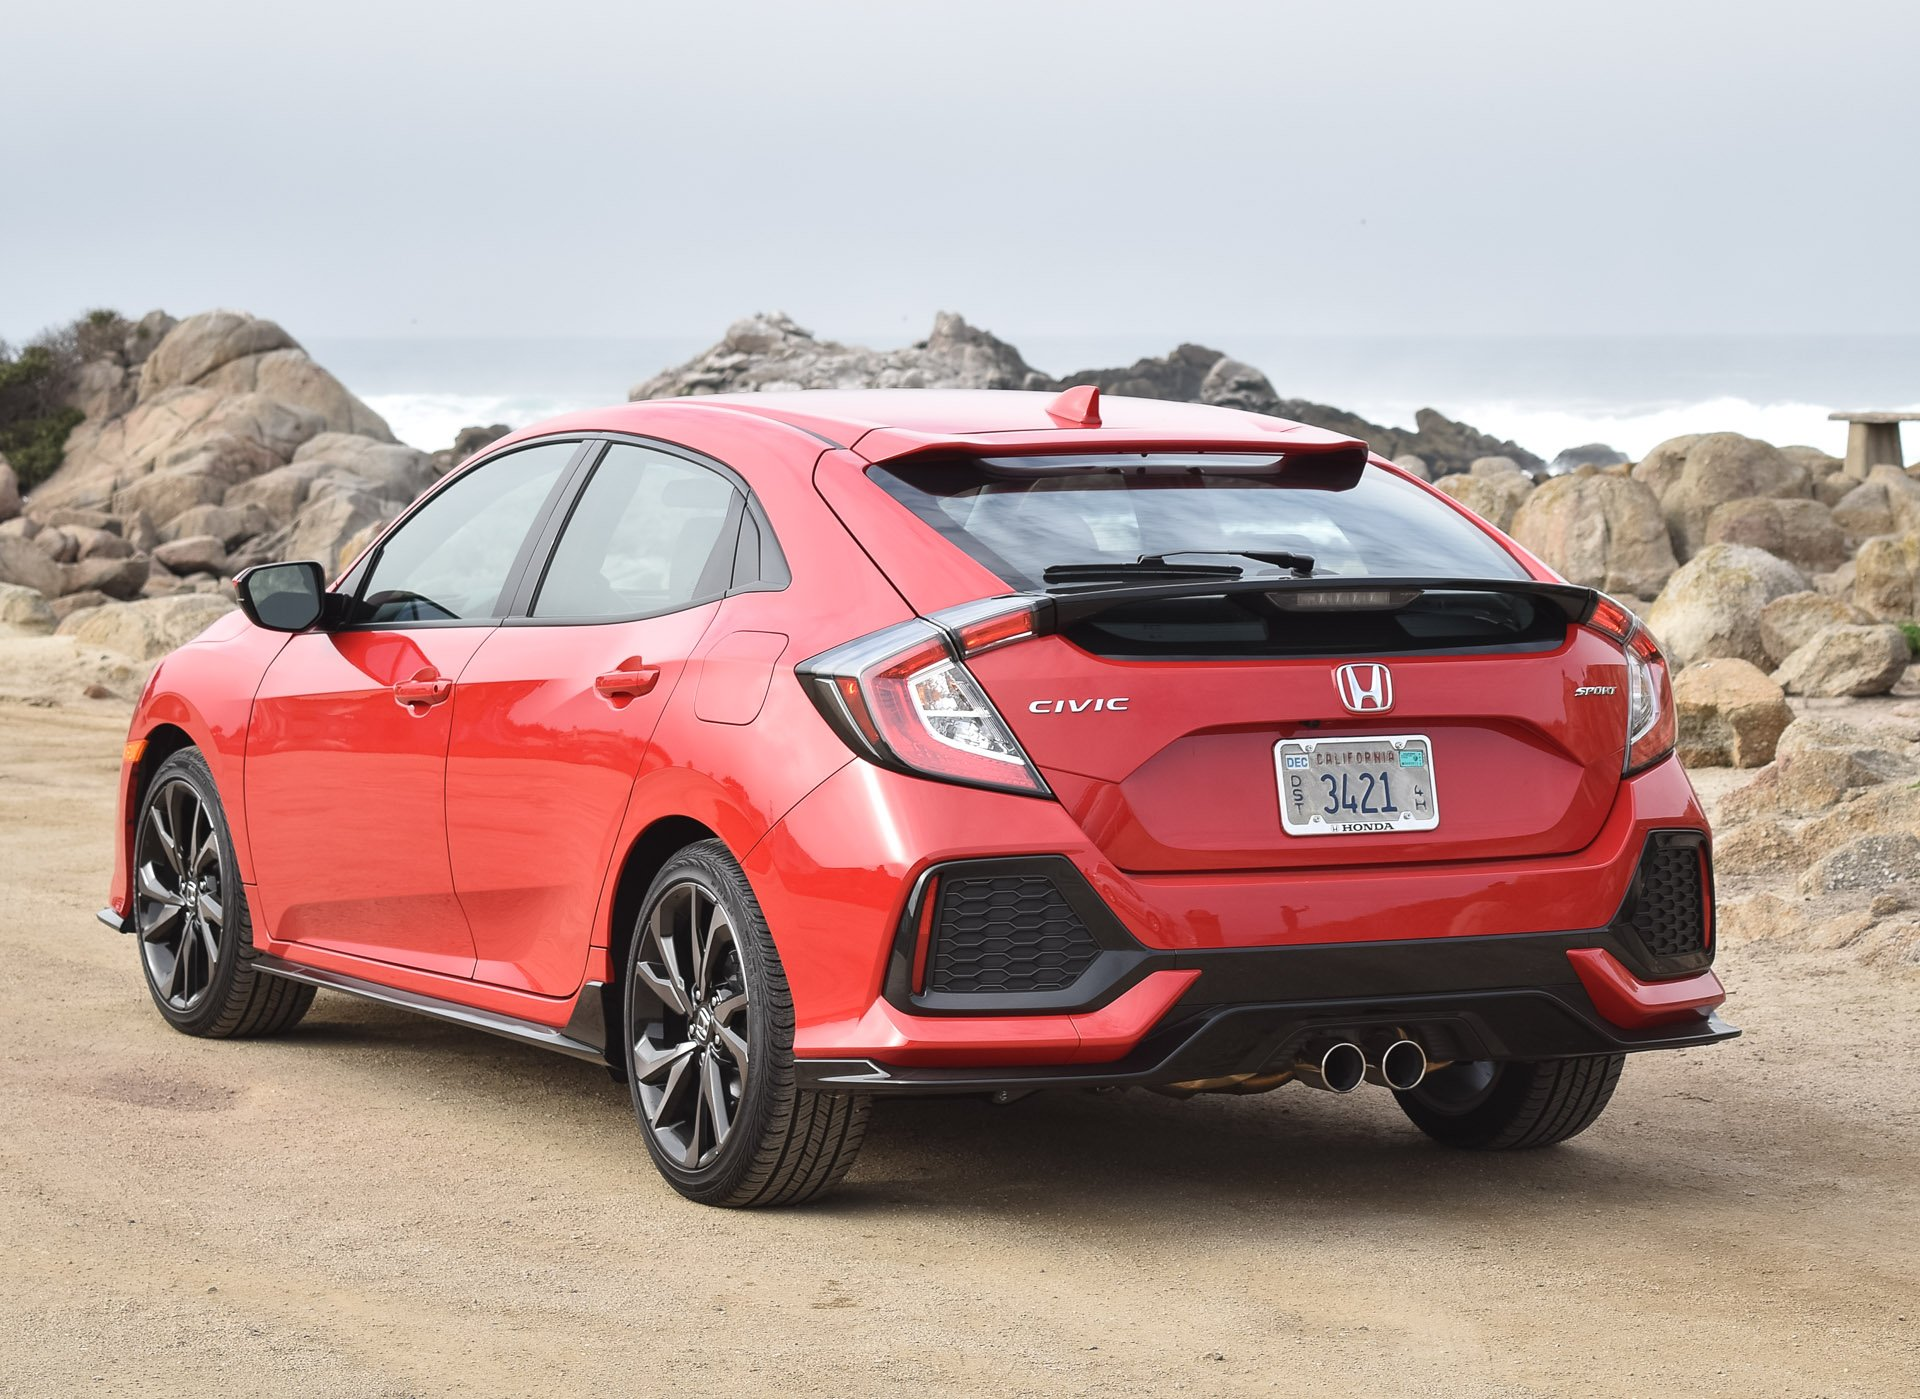 First Drive Review: 2017 Honda Civic Hatchback - 95 Octane